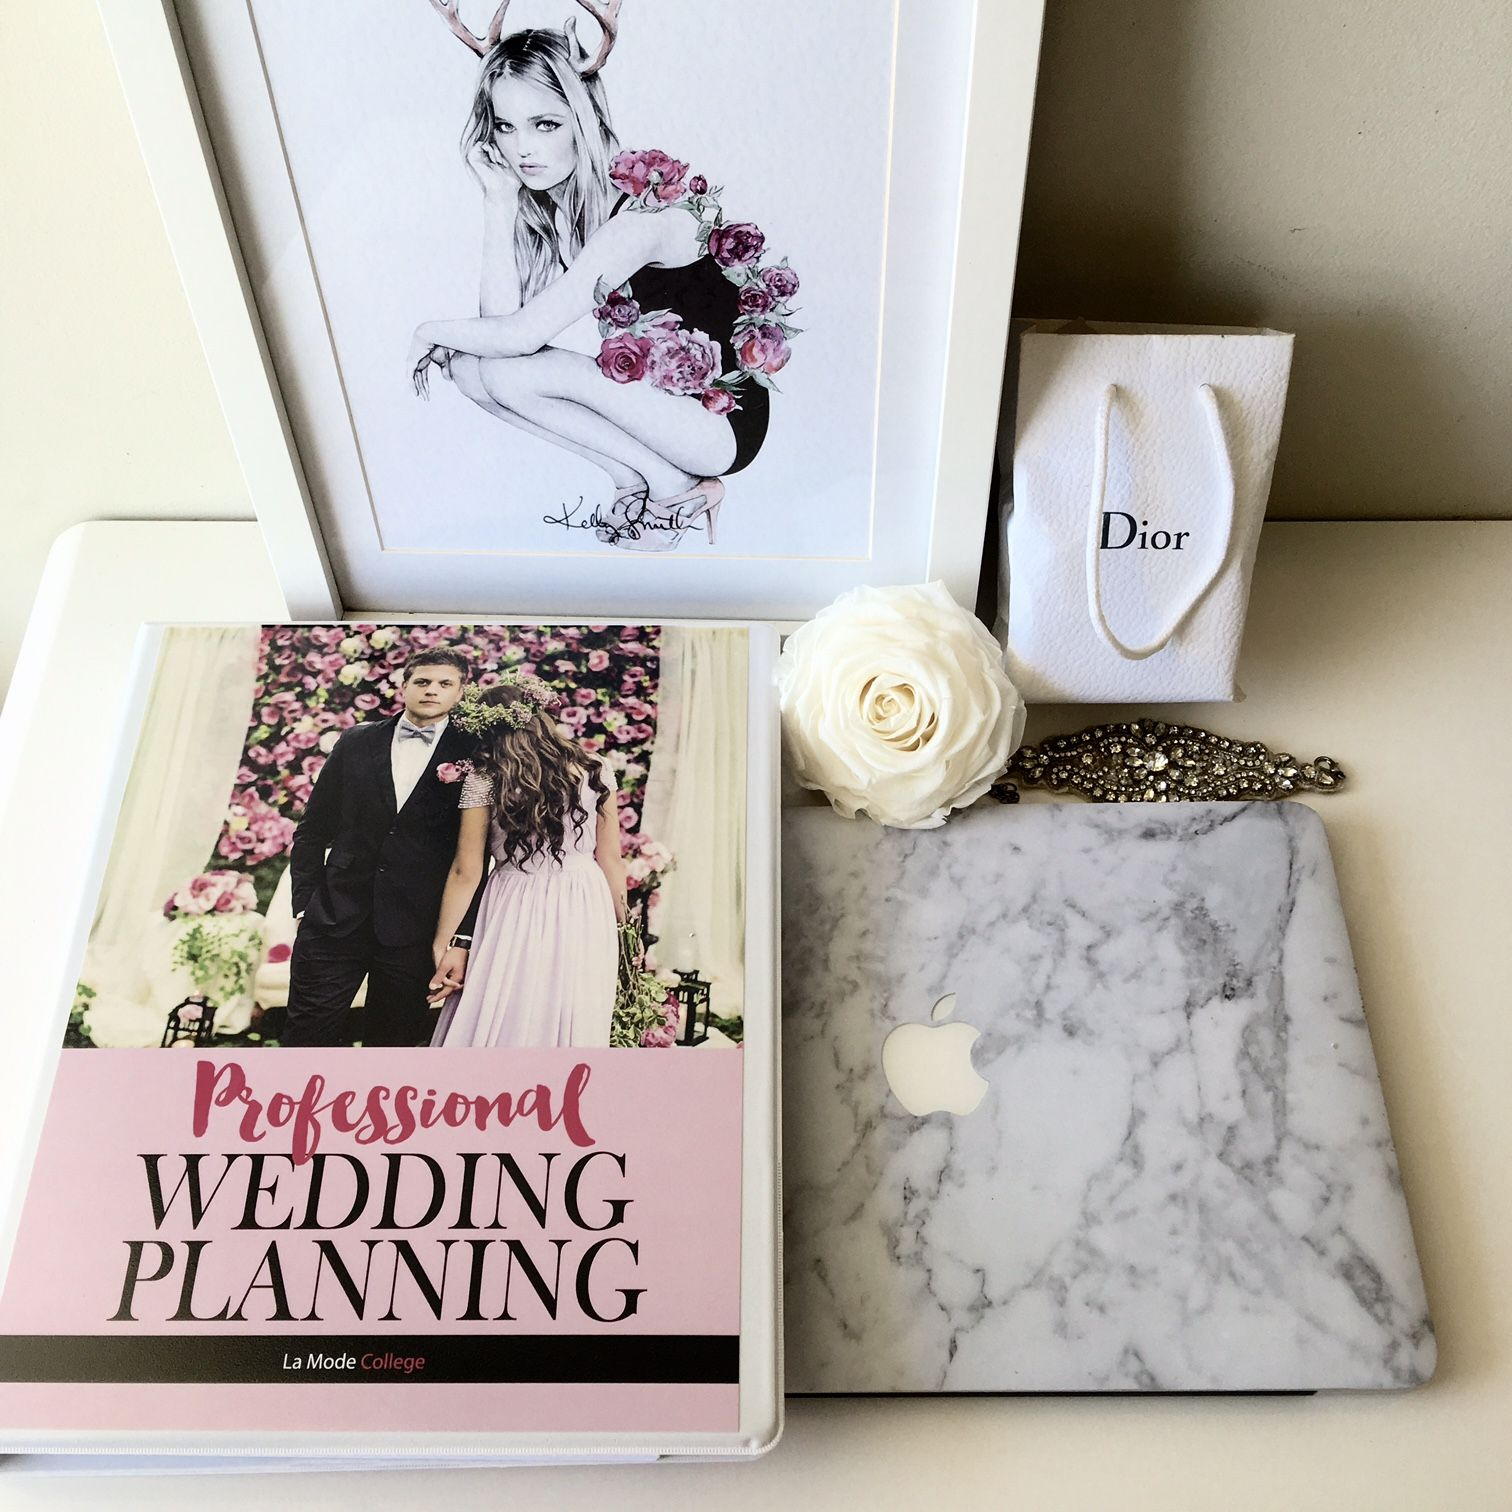 Best Wedding Planning Course Online Study to Become a Wedding